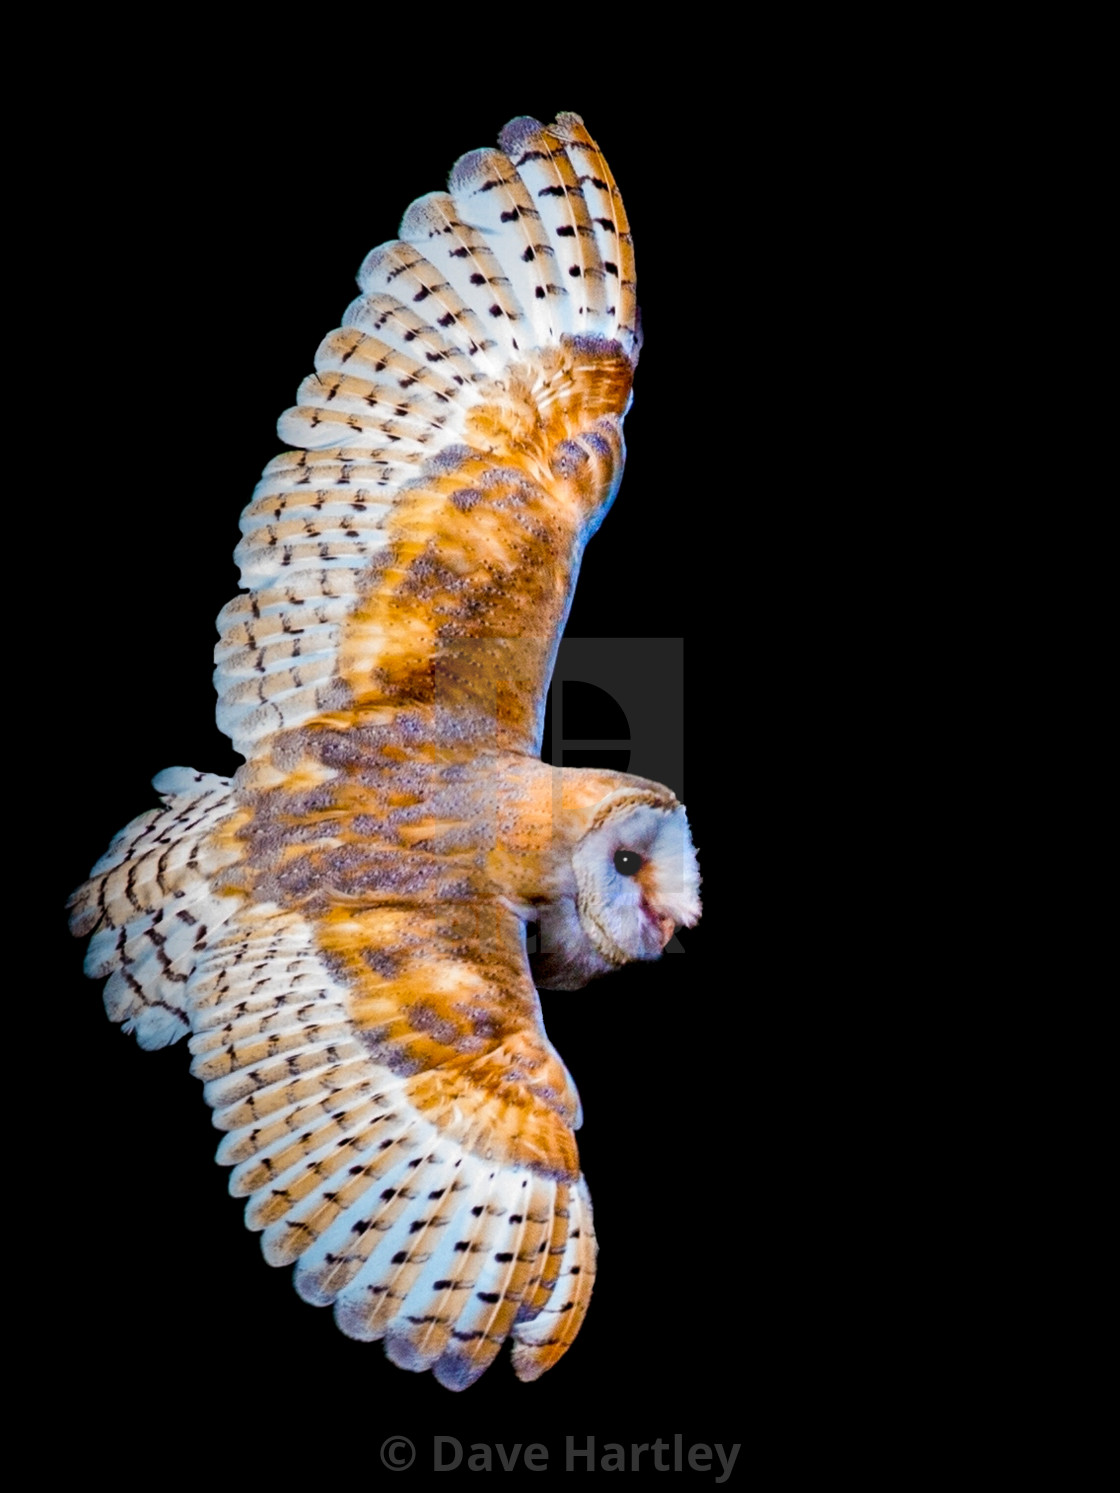 Night Owl - License, download or print for £18 60   Photos